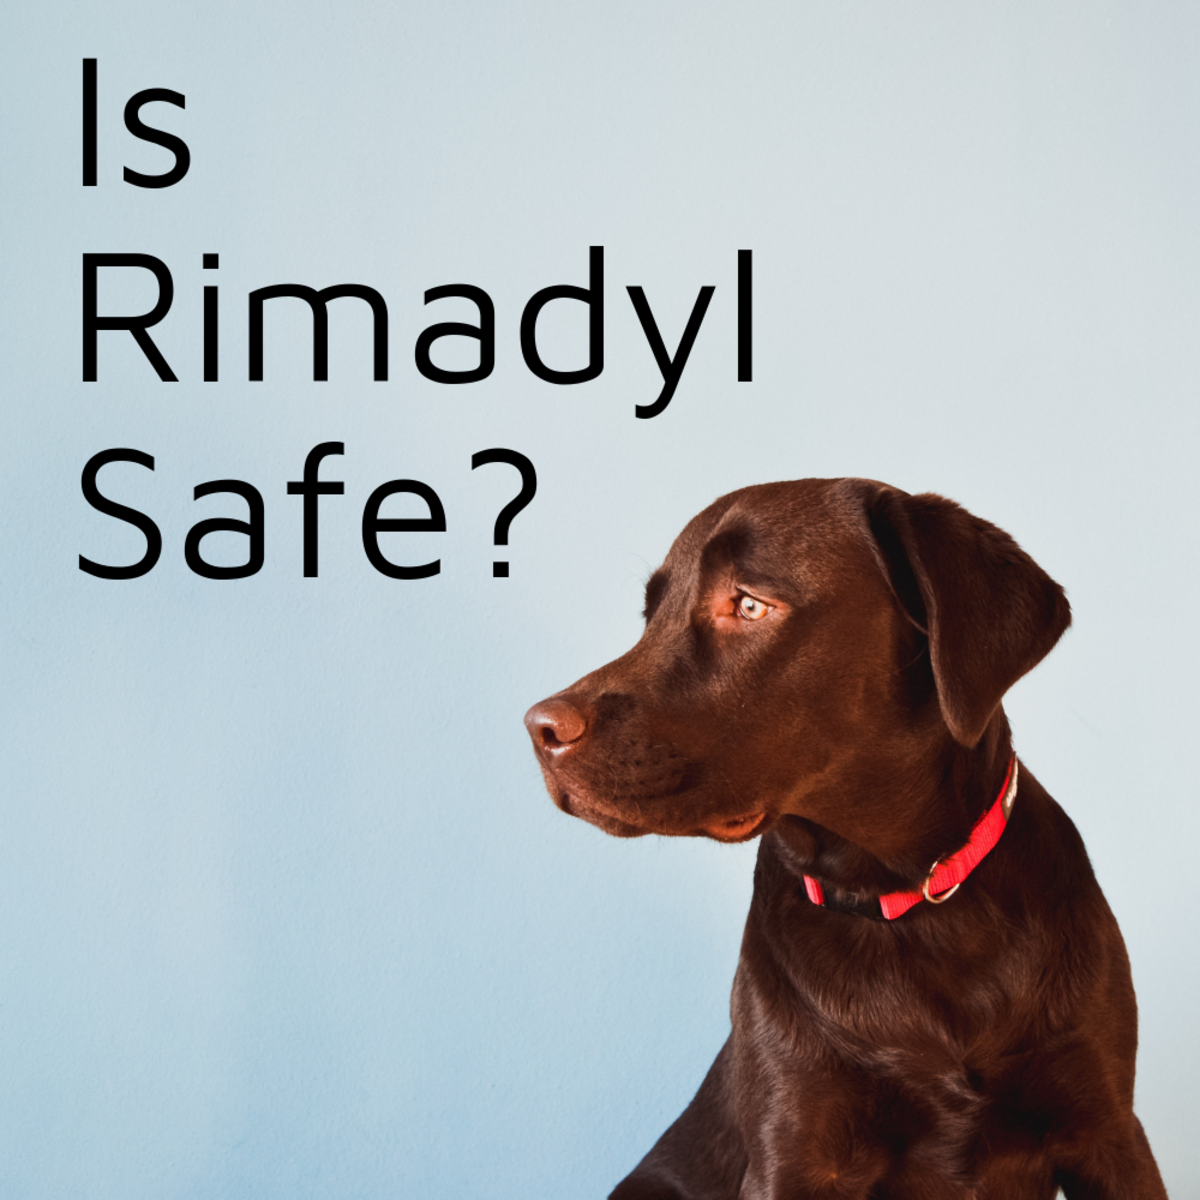 Learn more about the controversy over whether or not Rimadyl is really safe for dogs.